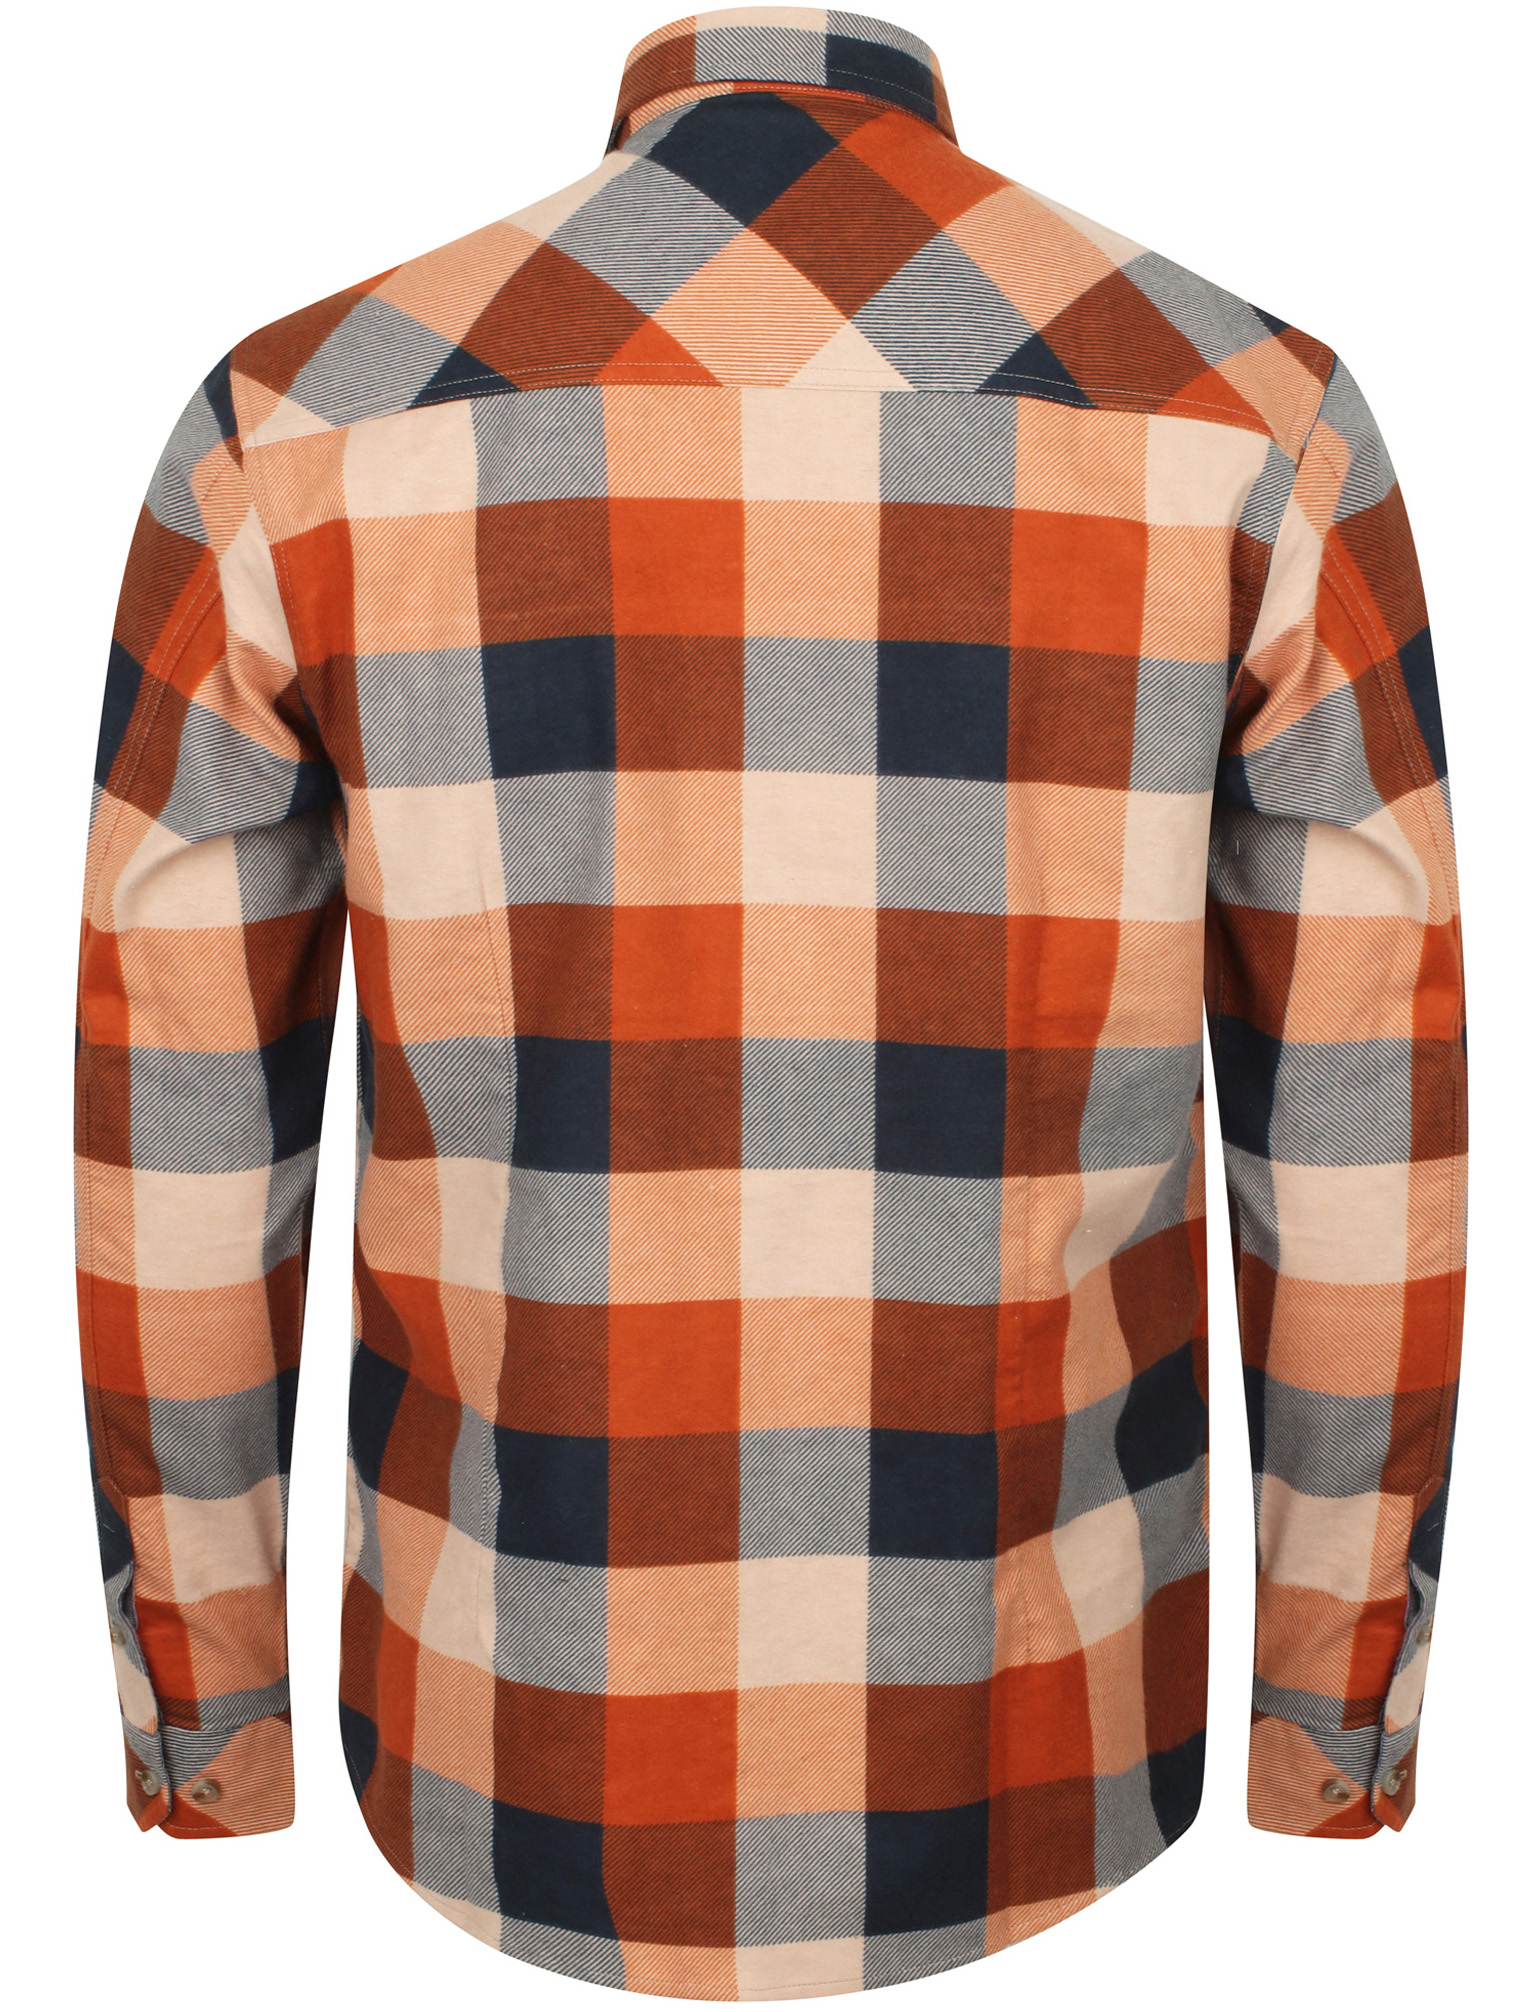 New-Mens-Tokyo-Laundry-Cotton-Long-Sleeve-Checked-Flannel-Shirt-Size-S-XXL thumbnail 20